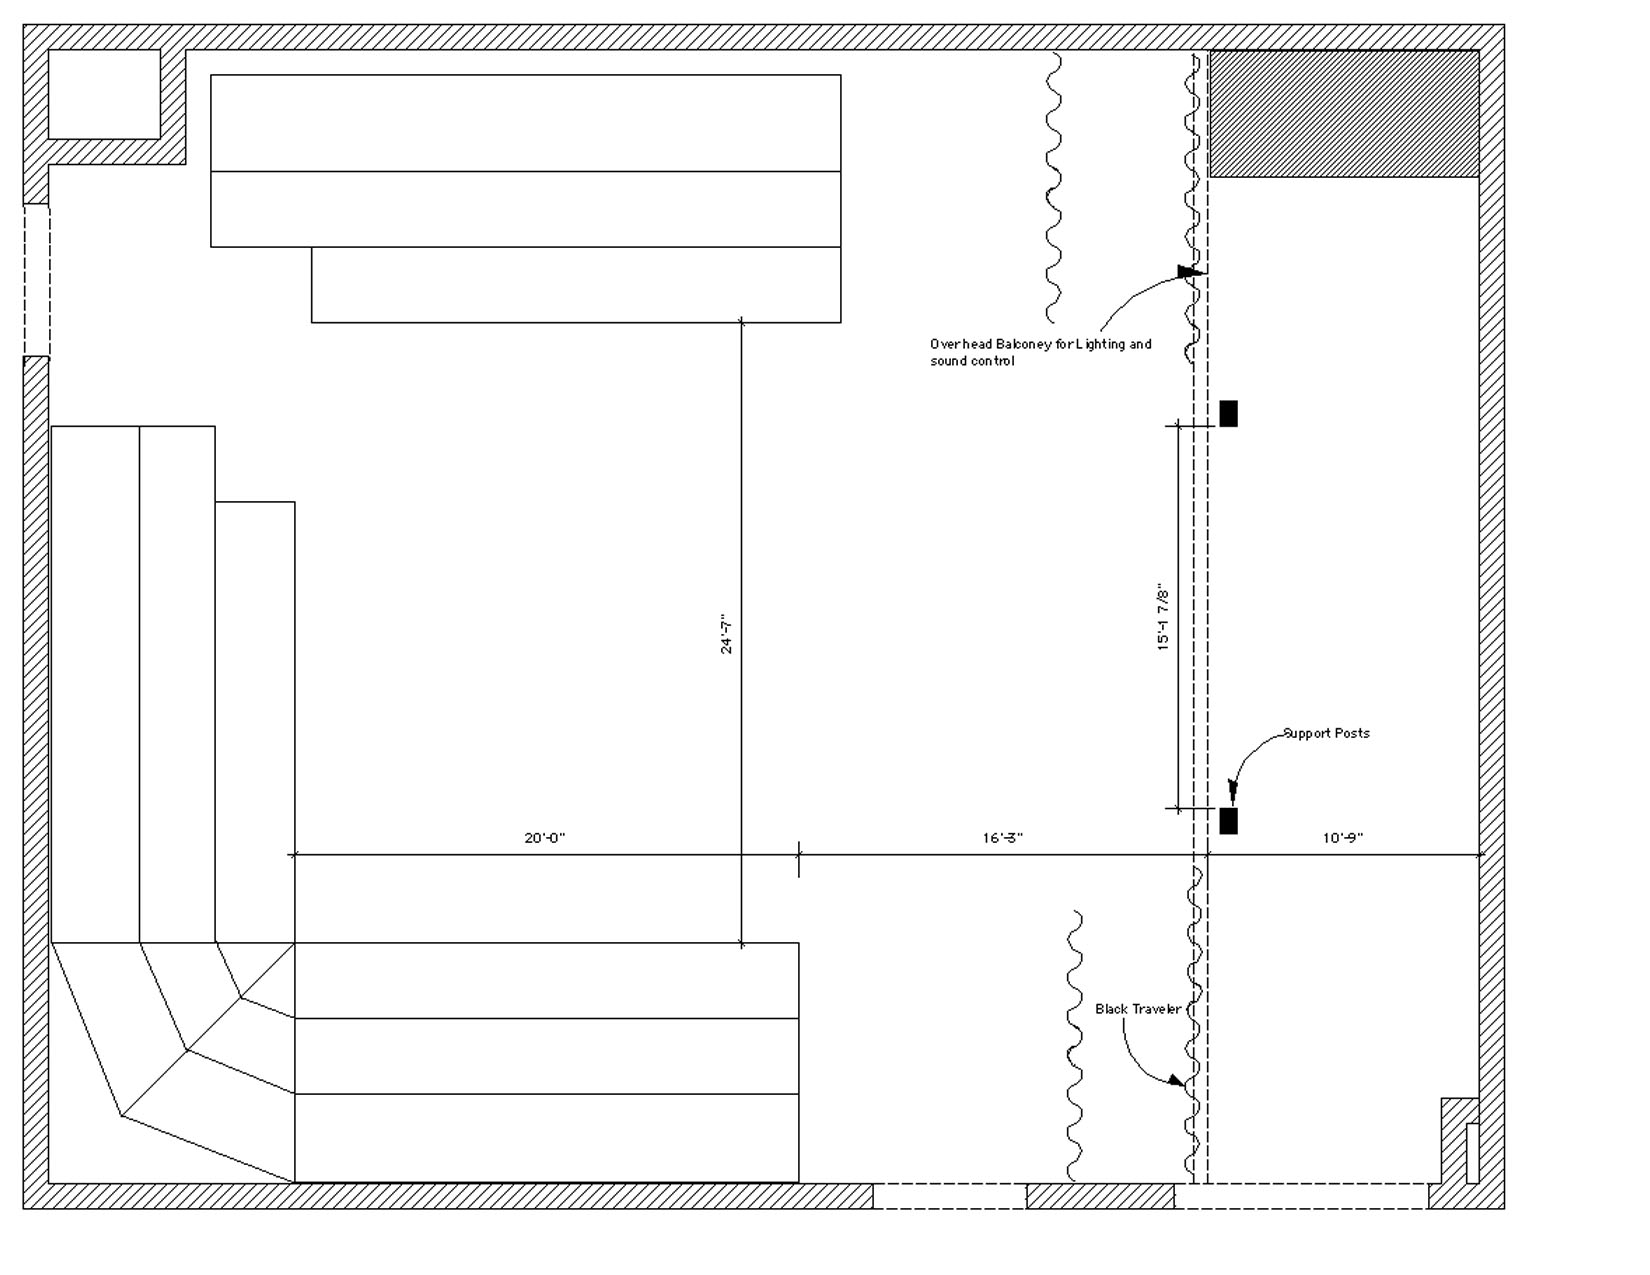 Theatre Stage Directions Diagram Free Wiring Diagram For You